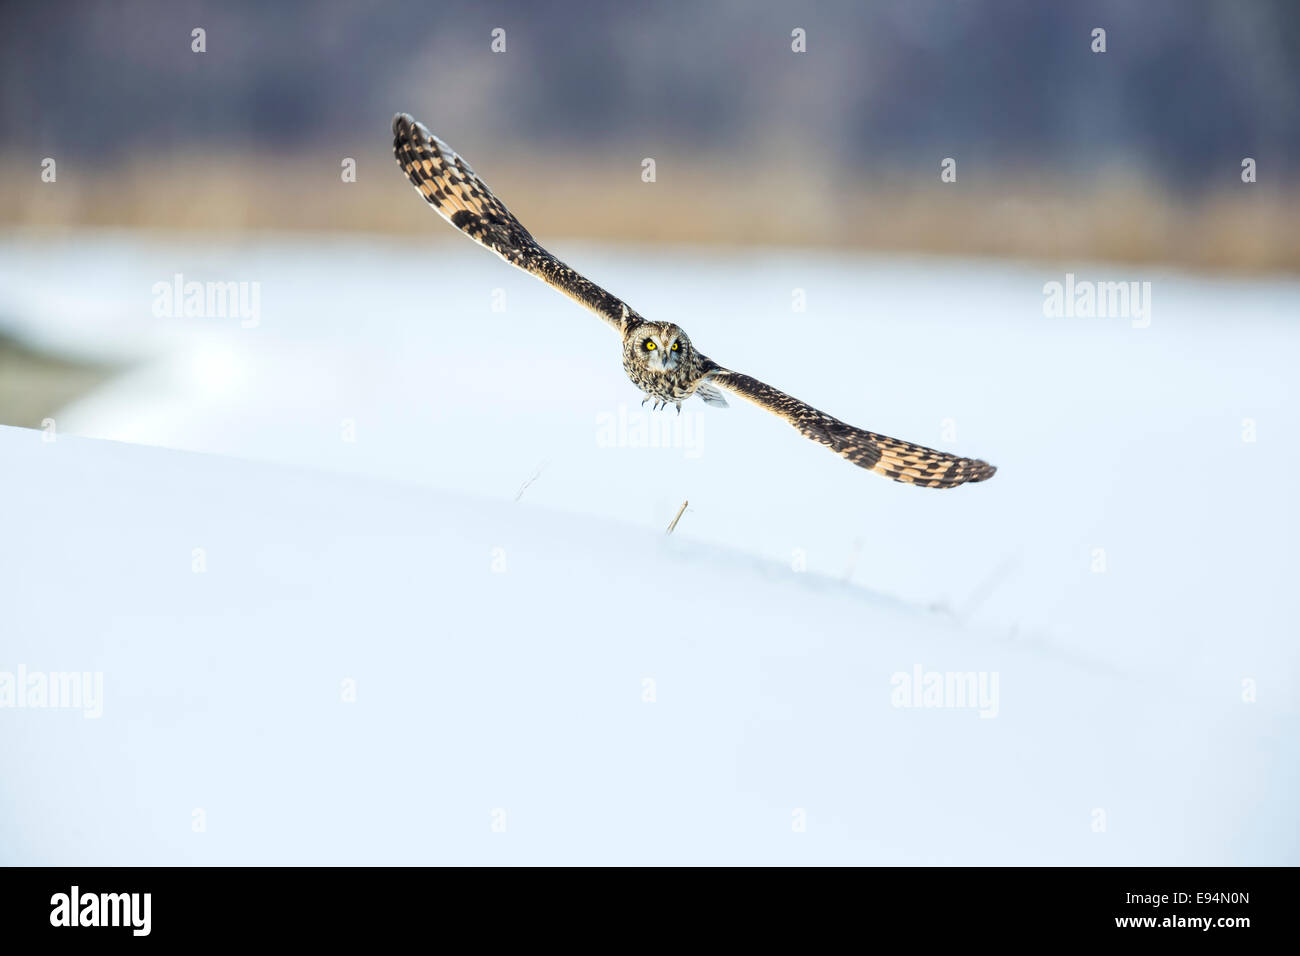 Short-eared Owl taking off with its wings widespread Stock Photo